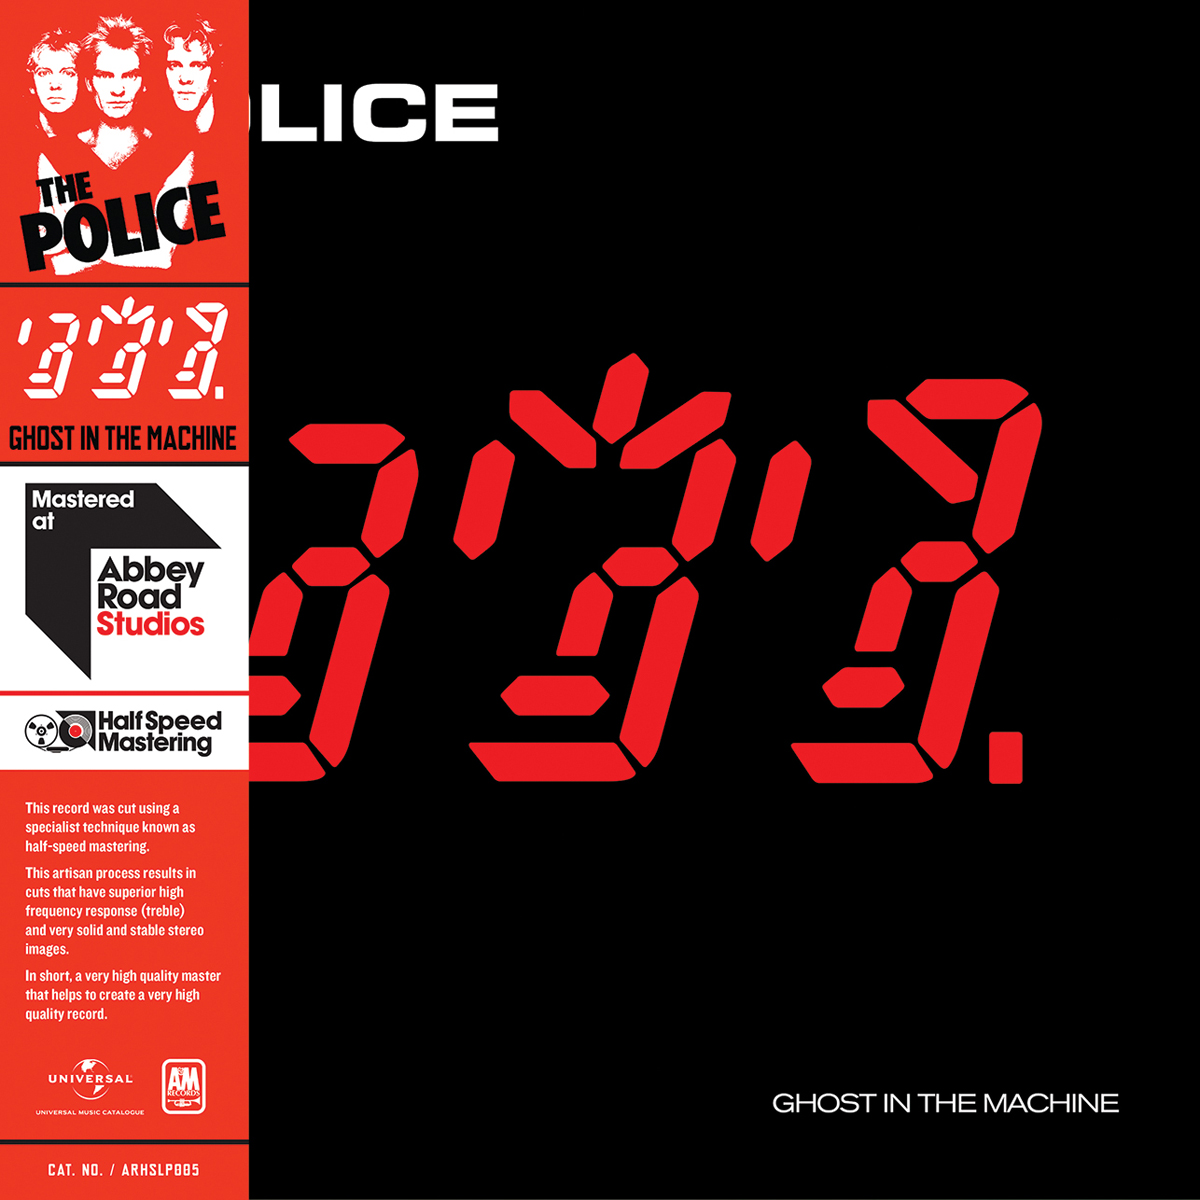 Police - Ghost in the Machine Vinyl LP